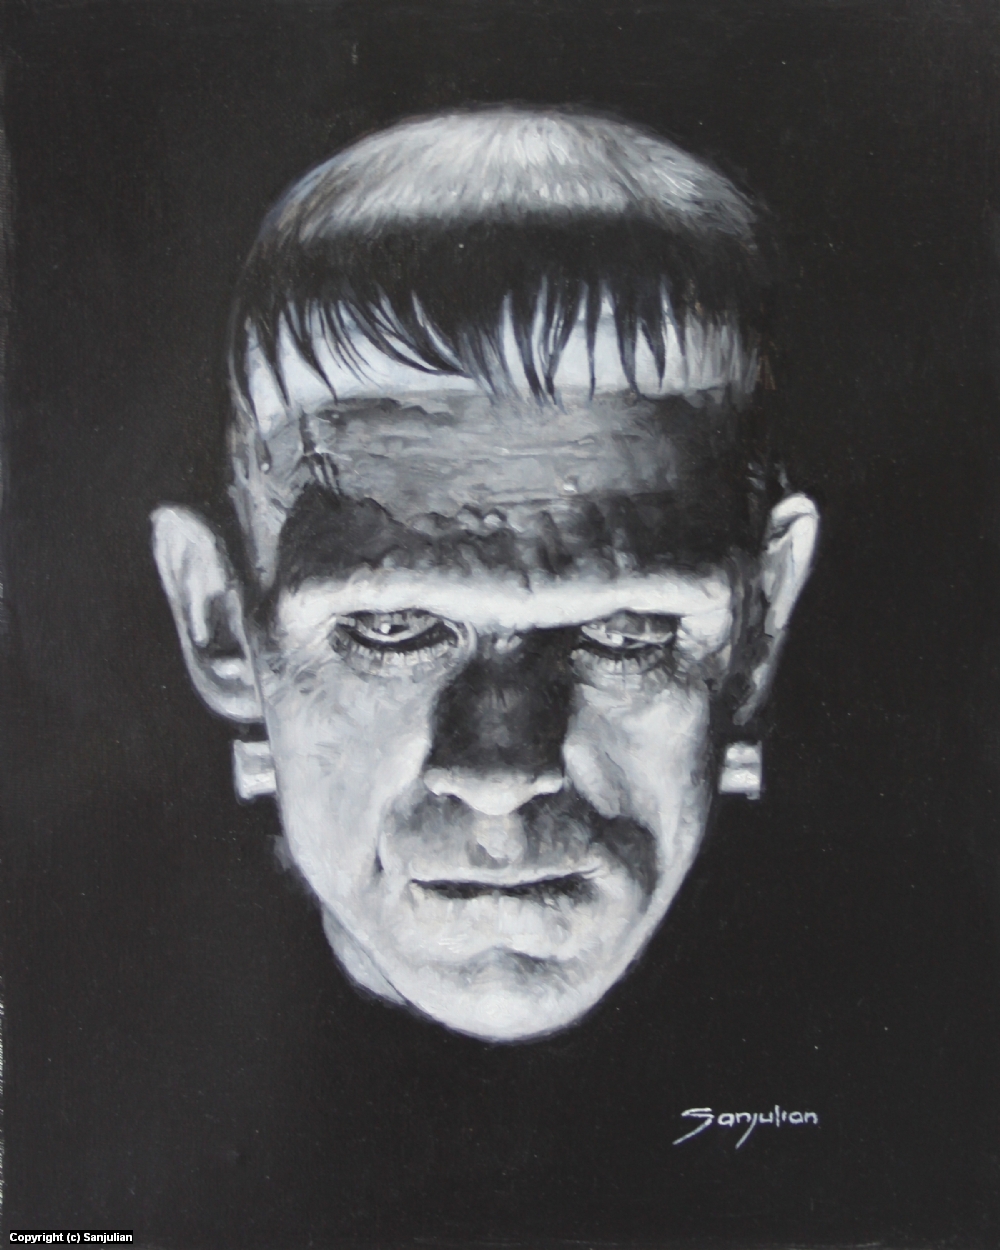 Frankenstein Artwork by Manuel Sanjulian